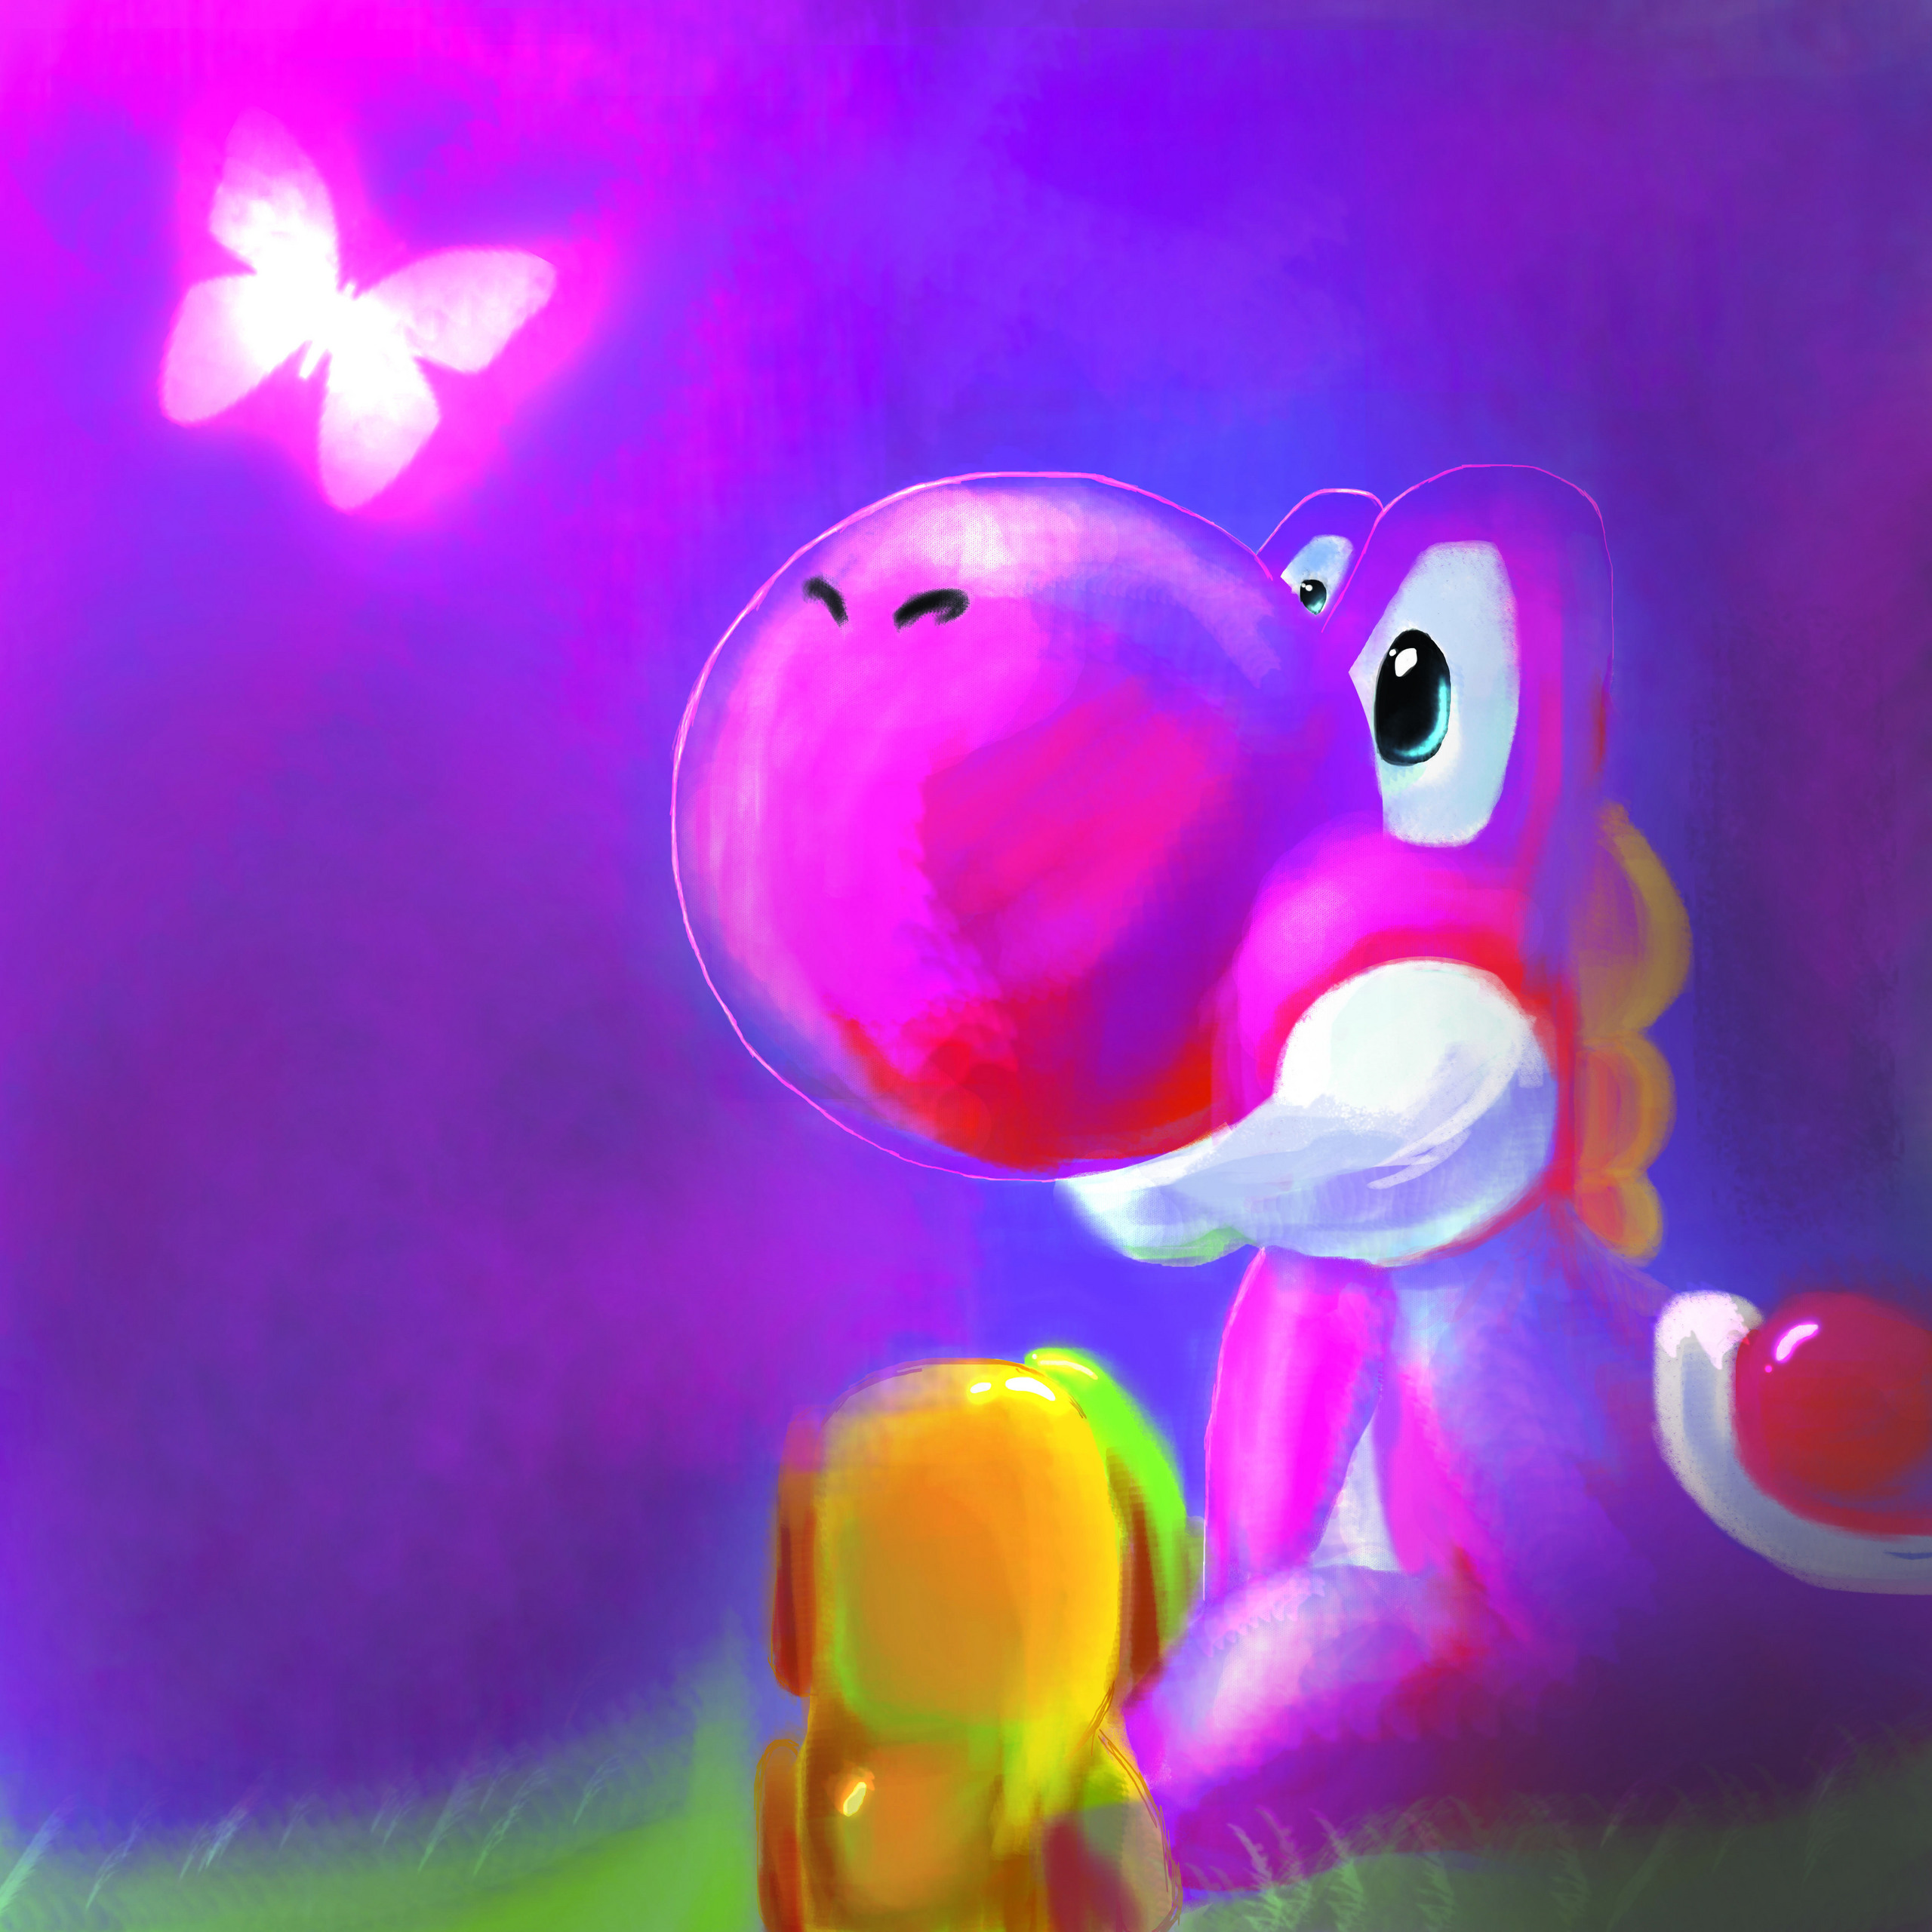 yoshi and birdo fan art fanpop fanclubs hd wallpaper Car Pictures 2560x2560